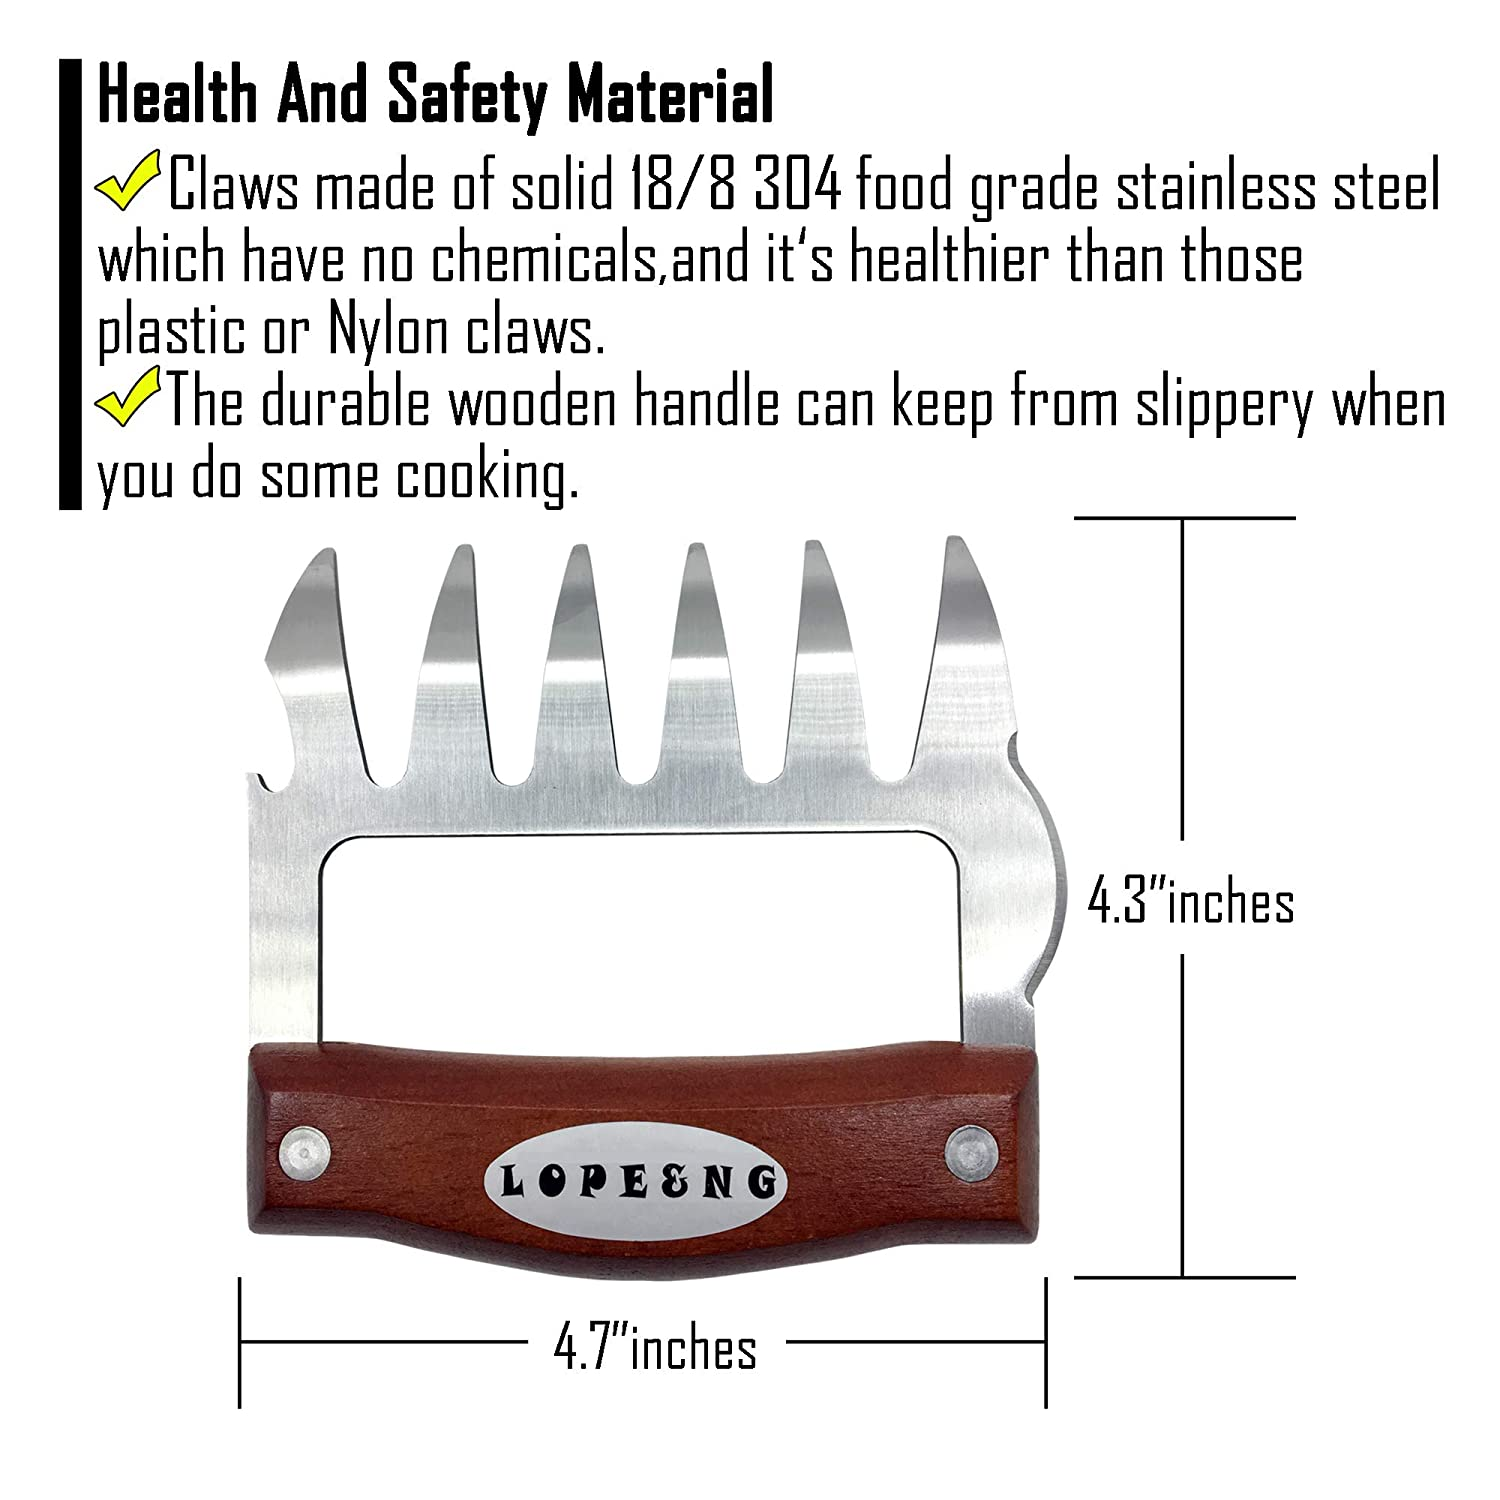 LOPE & NG Meat Handler Shredder Claws Set of 2 - Wood Stainless Steel BBQ Pulled Pork Paws for Shredding Handing Carving Food